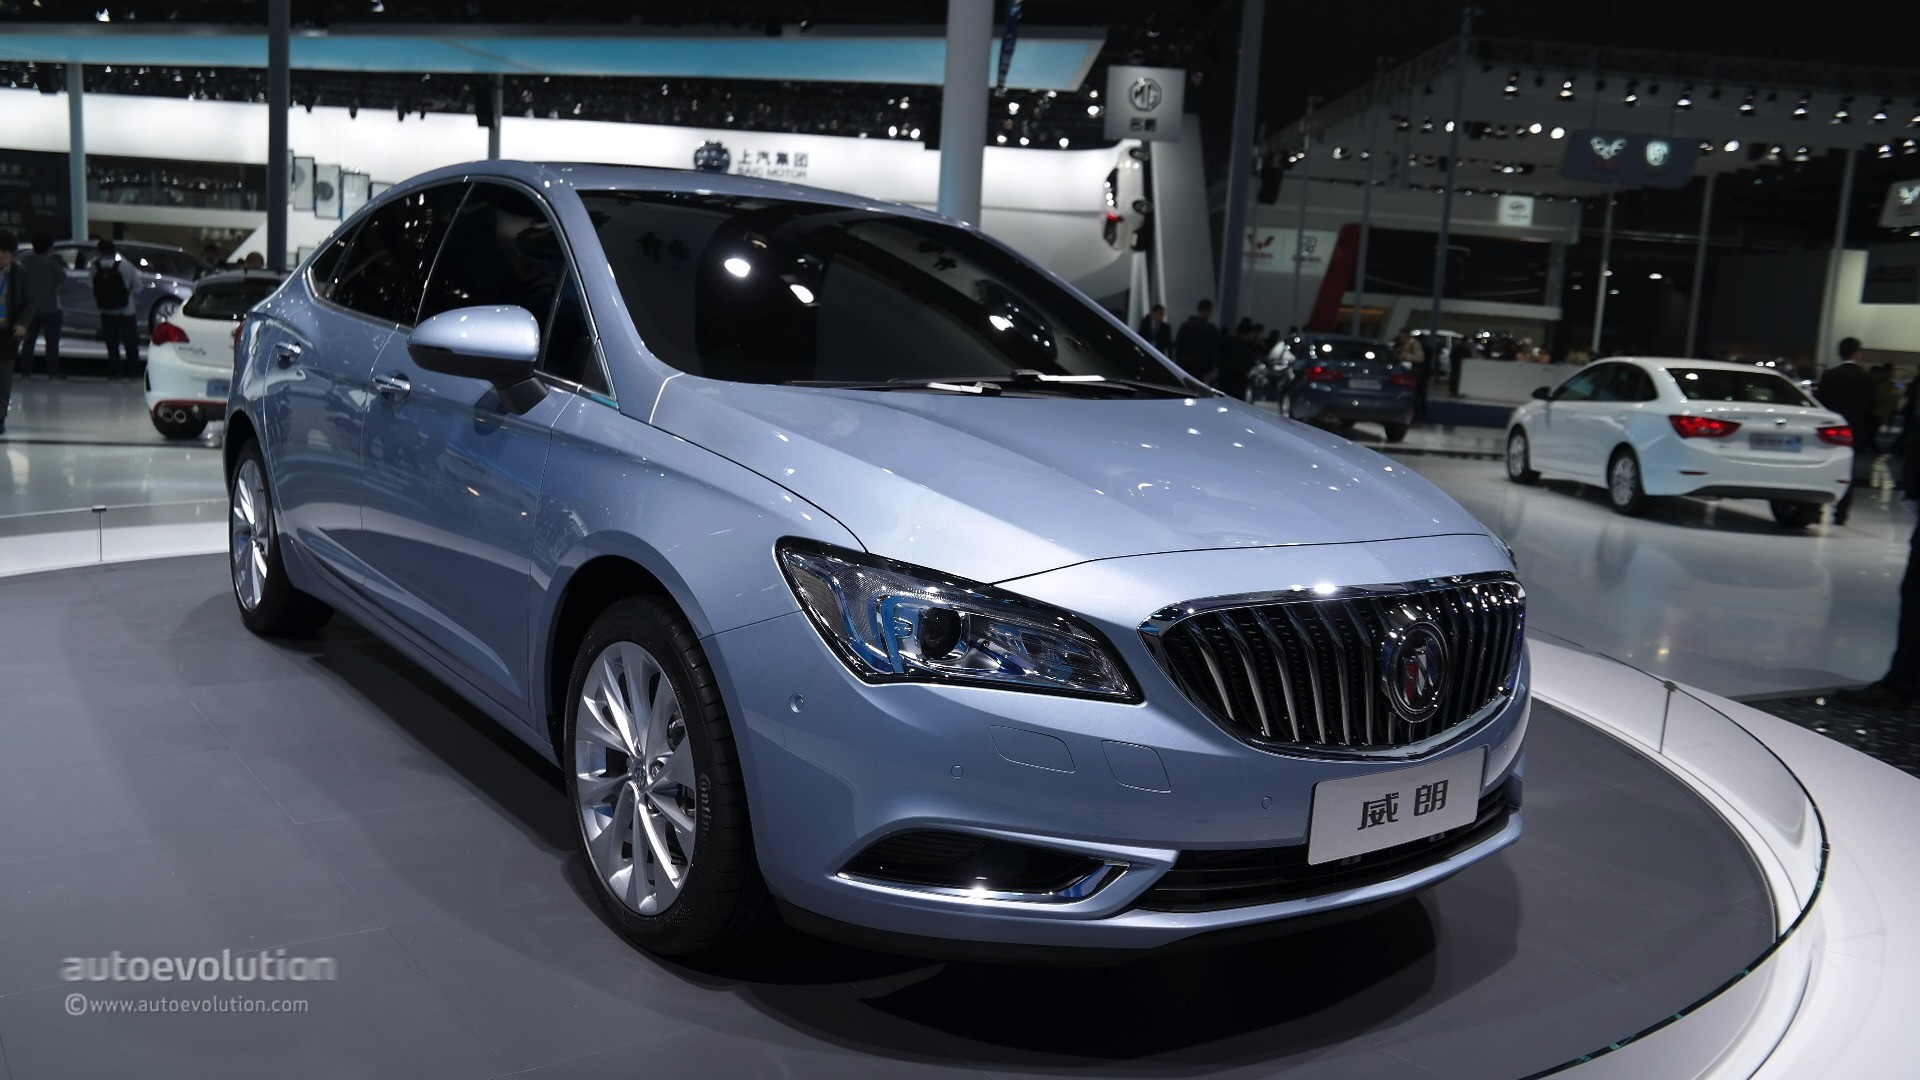 Buick Verano Isnt An All New Model Buick Verano Debut Postponed Photo Gallery on 2018 Buick Lacrosse